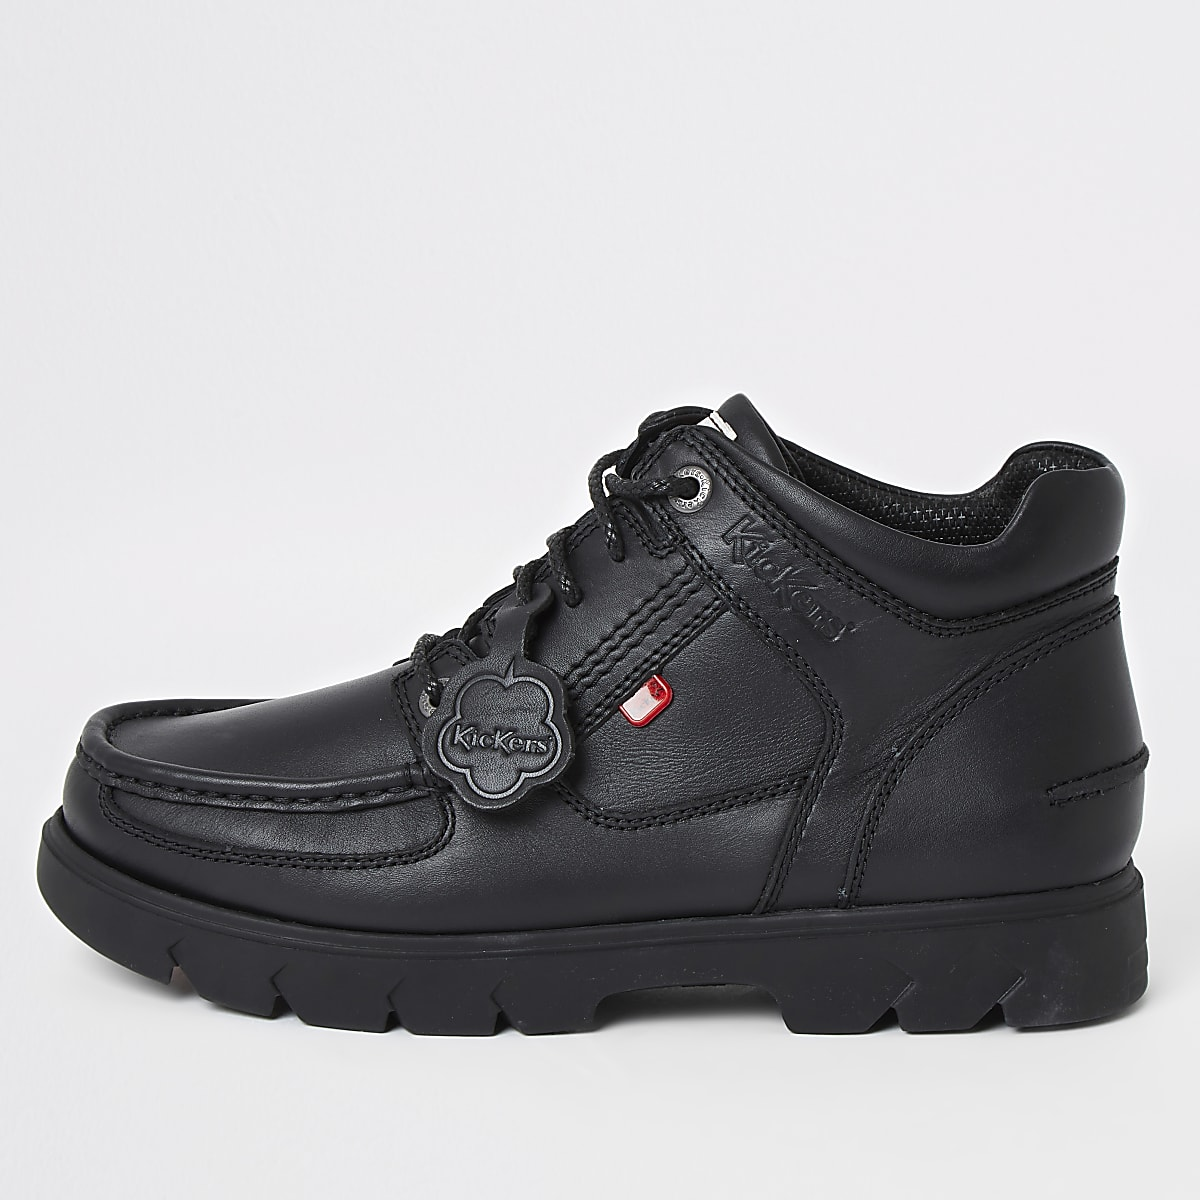 Kickers lennon black leather high top boots